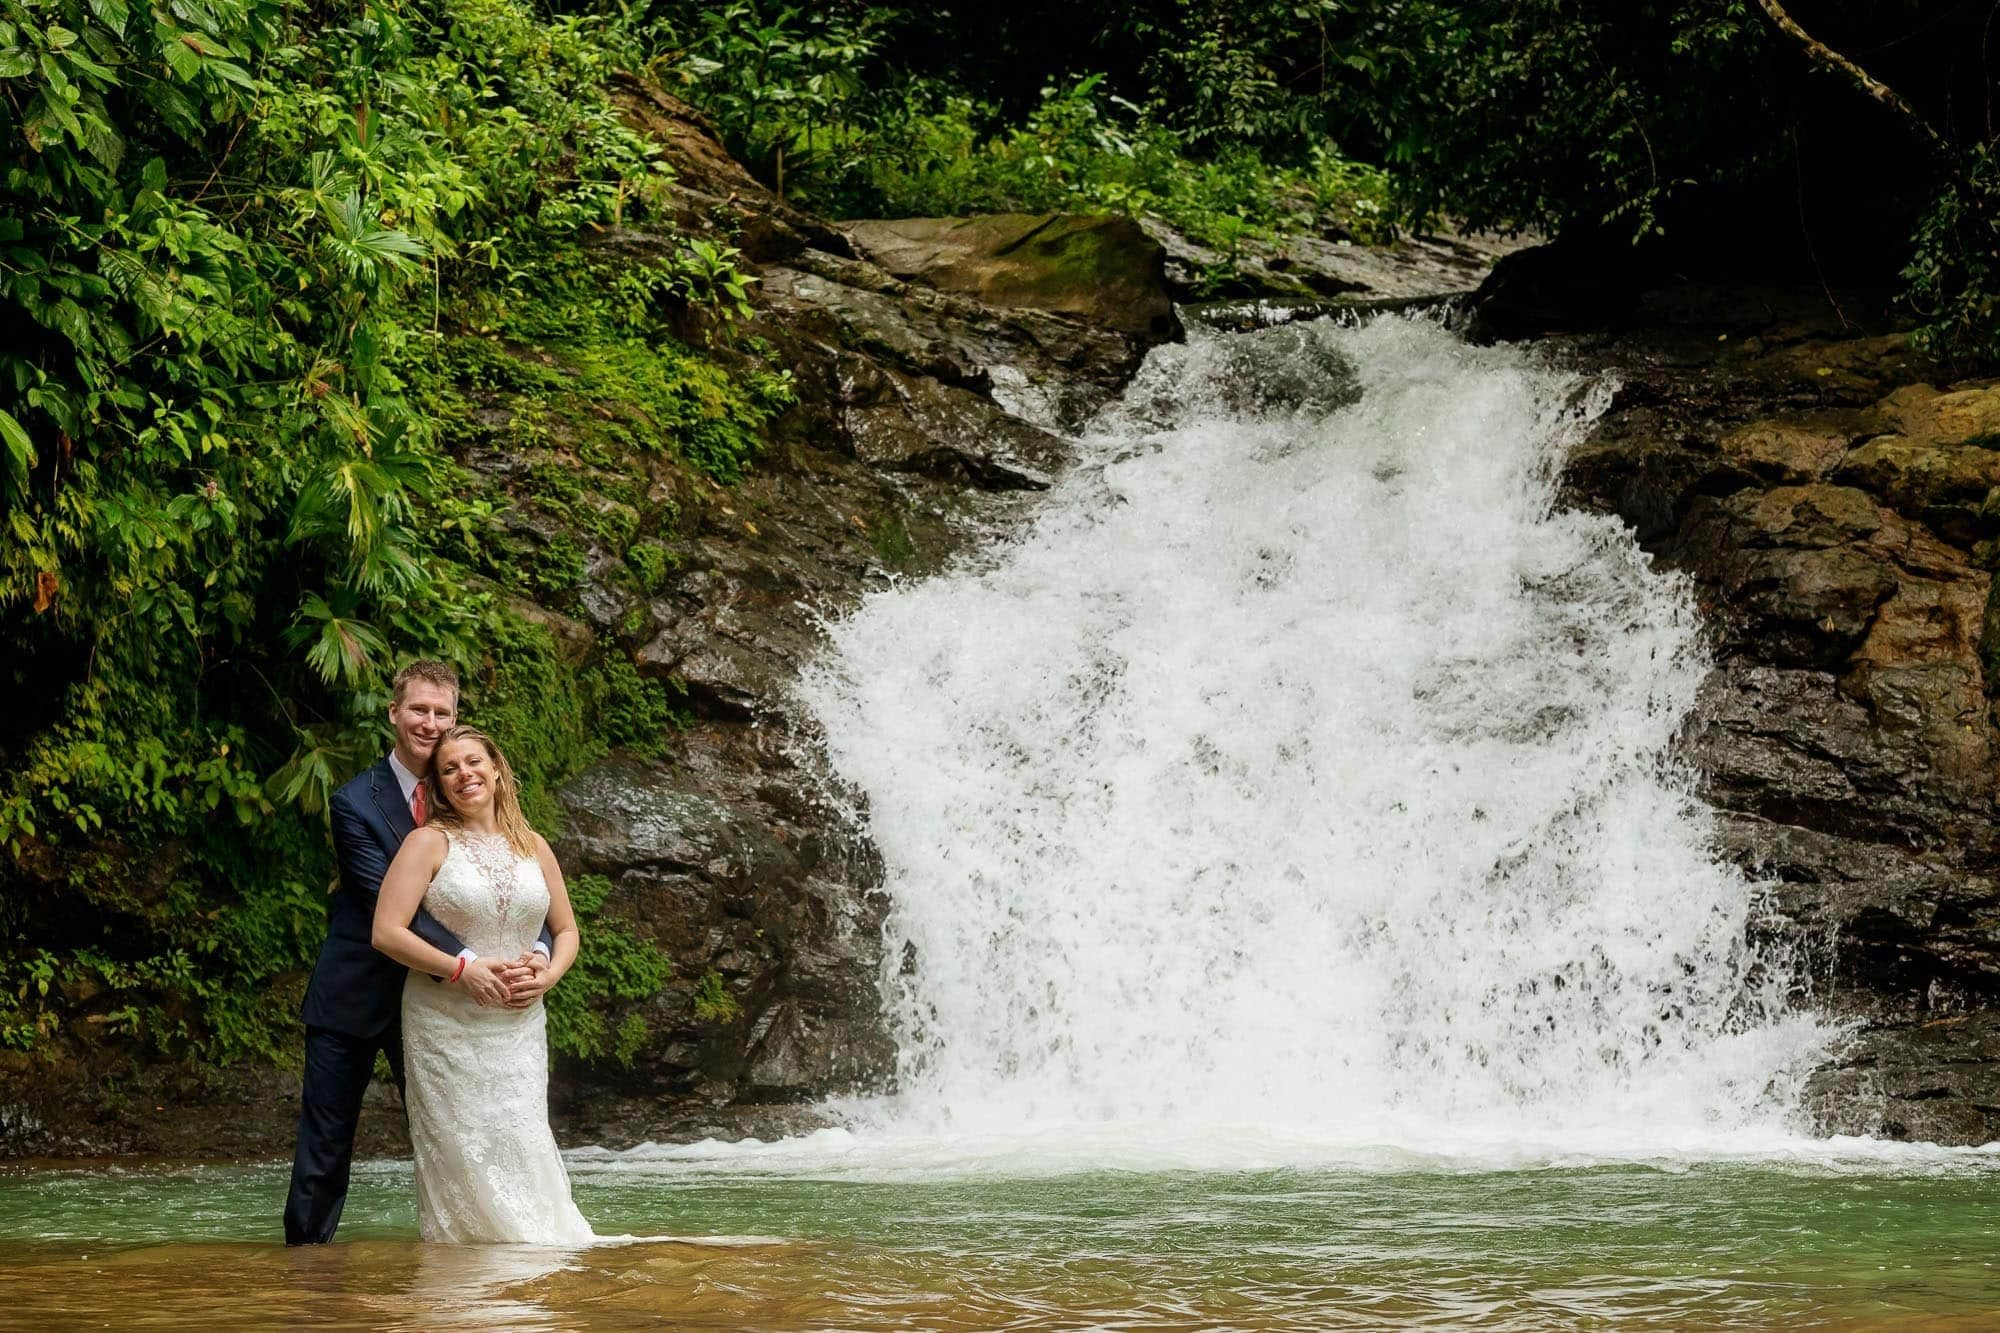 Bride and groom posing off the beaten path in Costa Rica at the base of a waterfall